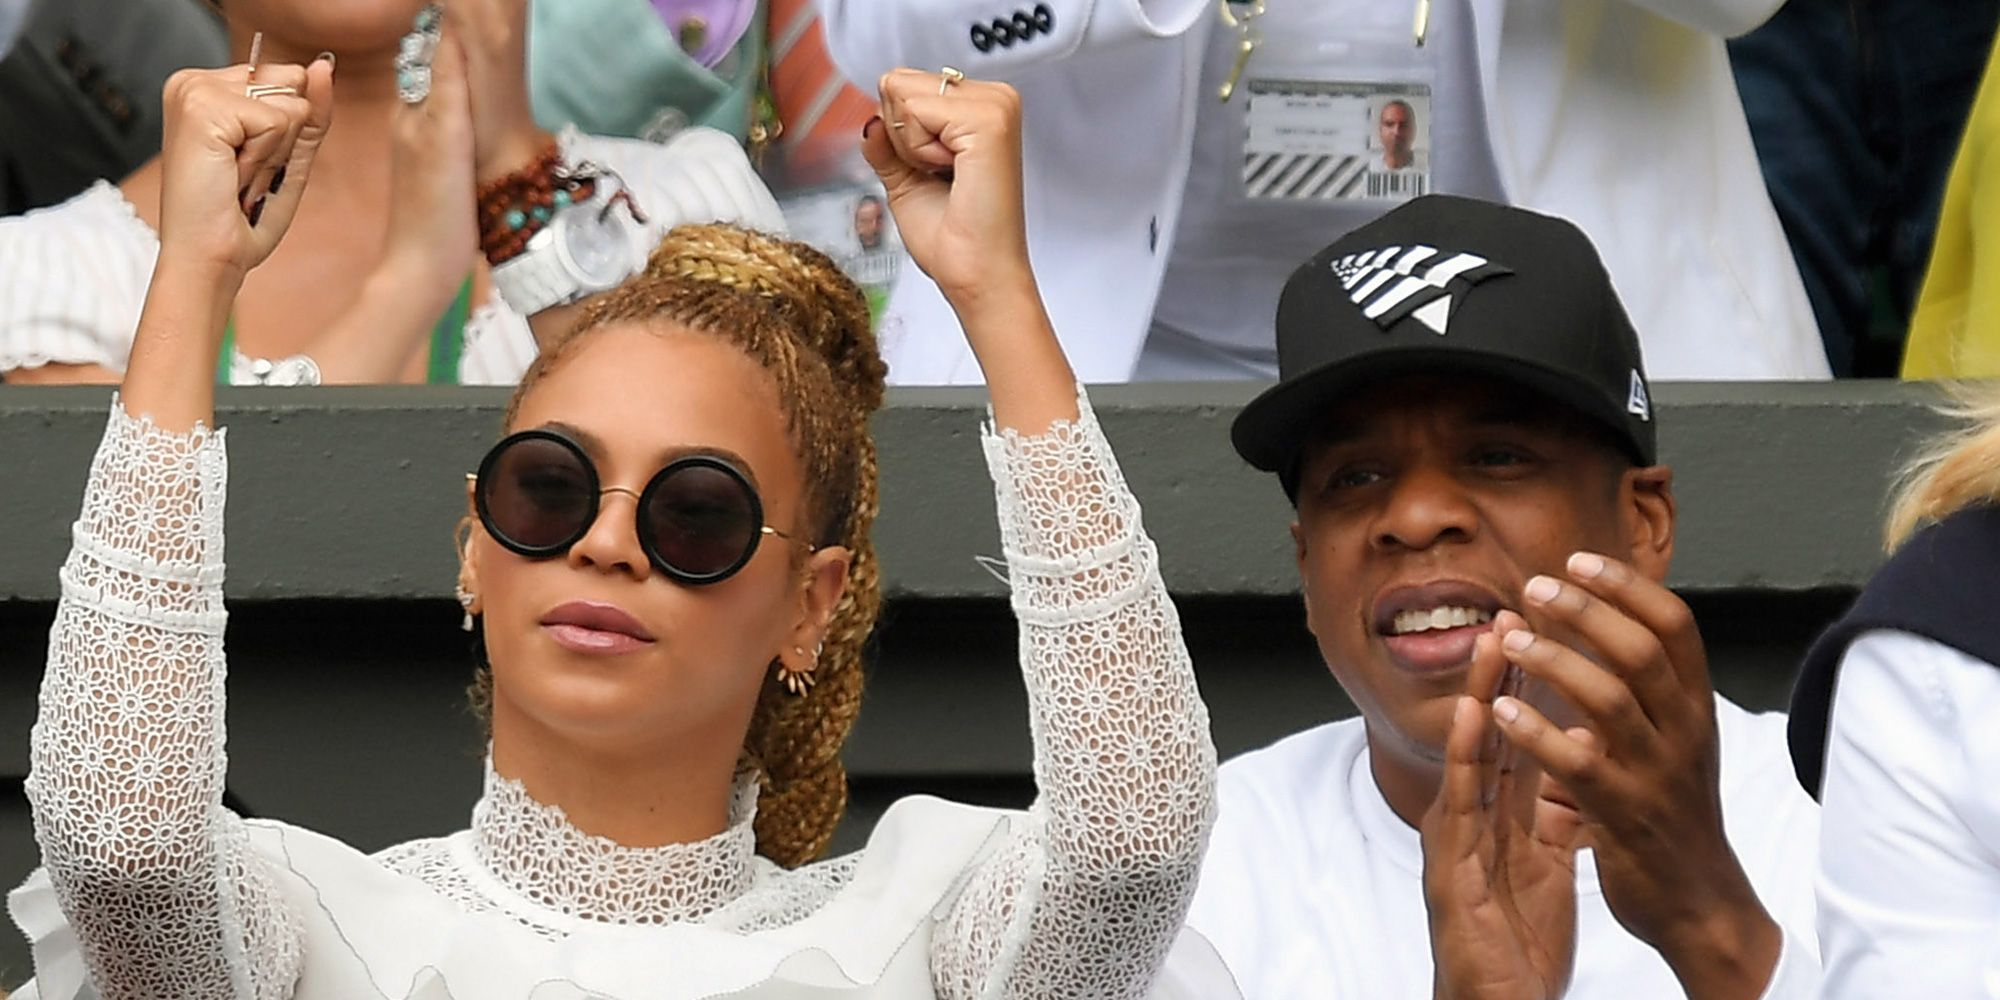 If You're Going to Match Your Partner's Clothes, Do It Like Jay and Bey